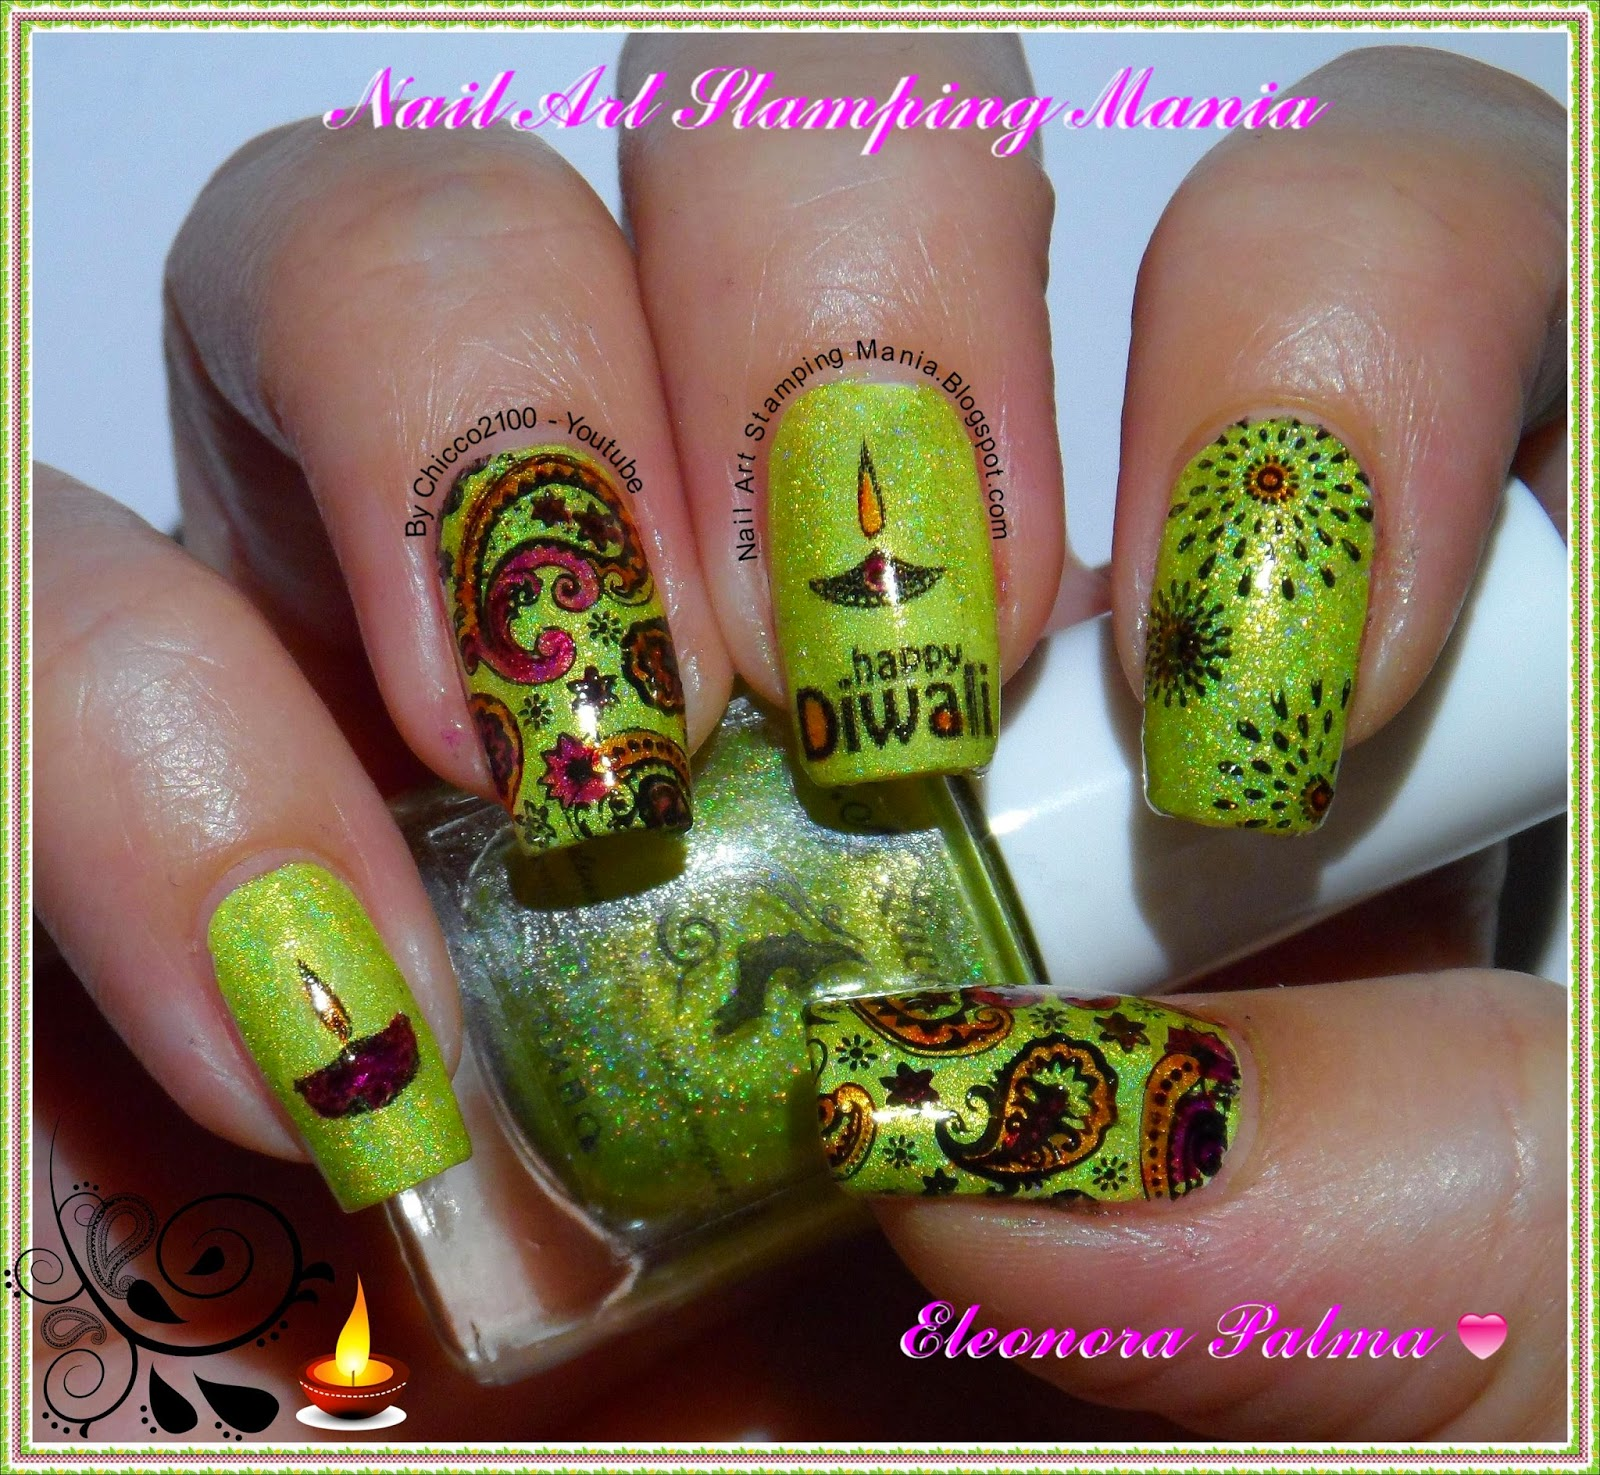 Nail Art Stamping Mania Diwali Festival Manicure With Konad And Vl Plates